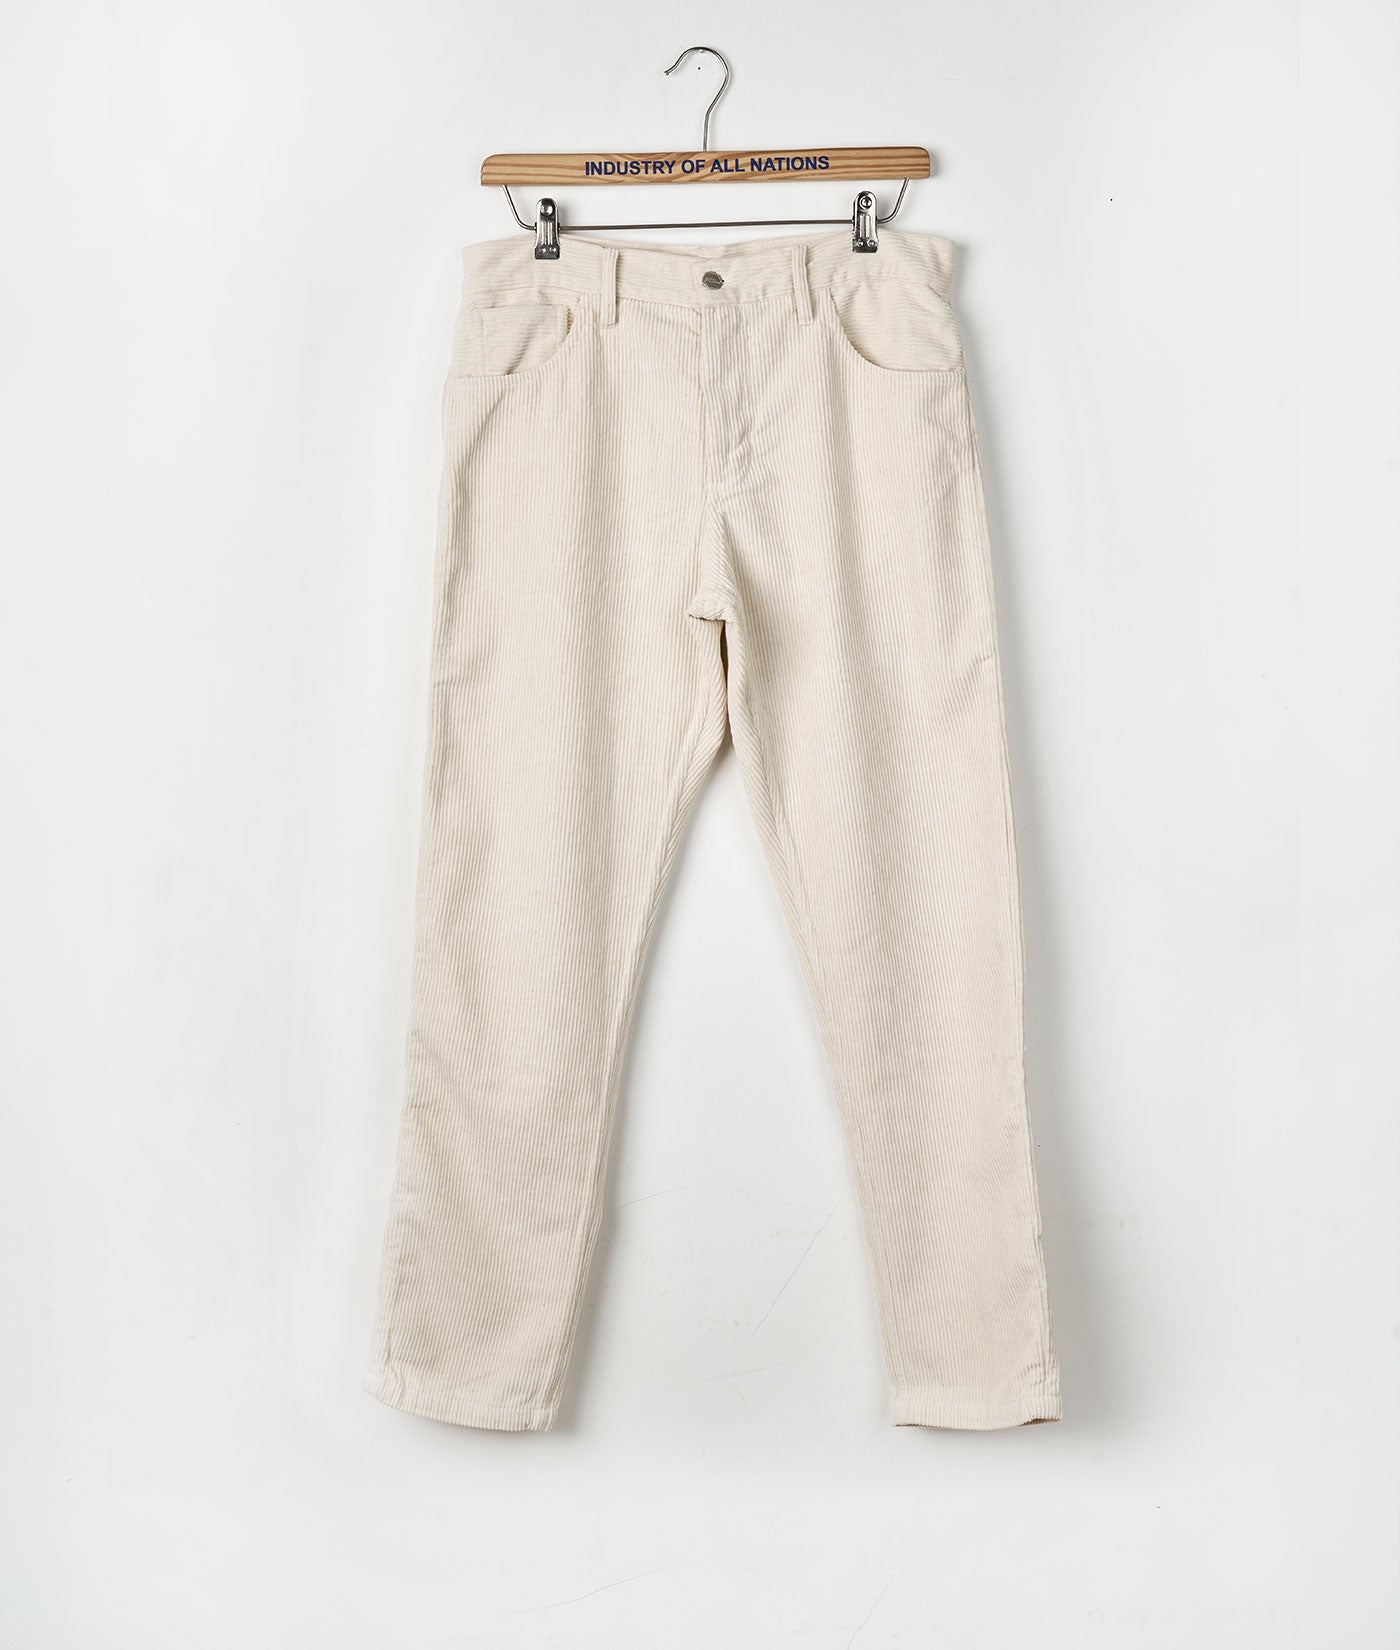 Industry of All Wide Wale Sustainable Corduroy Pants Undyed